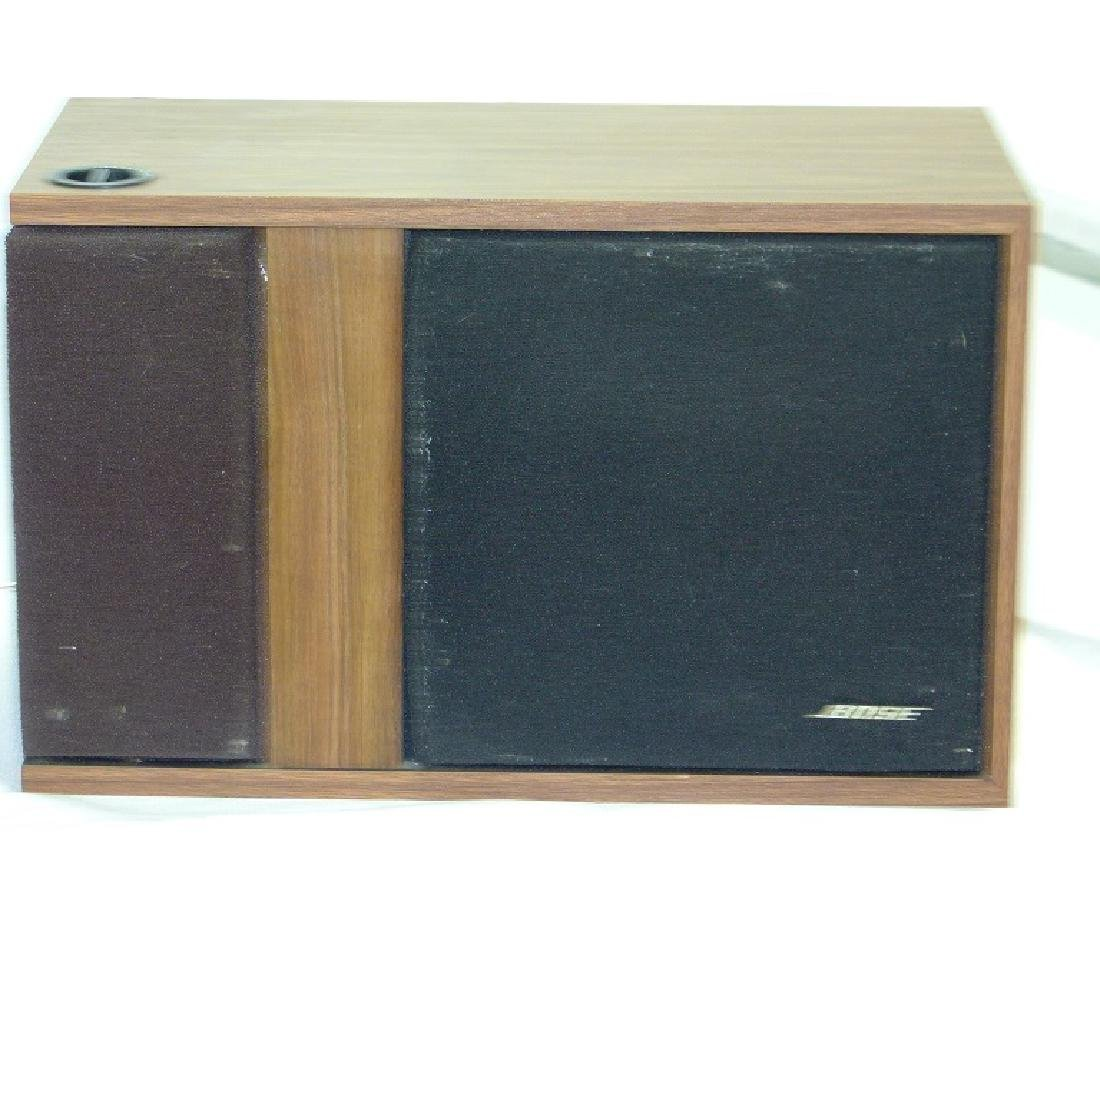 BOSE 301 SPEAKERS, C. 1970/80 - 3